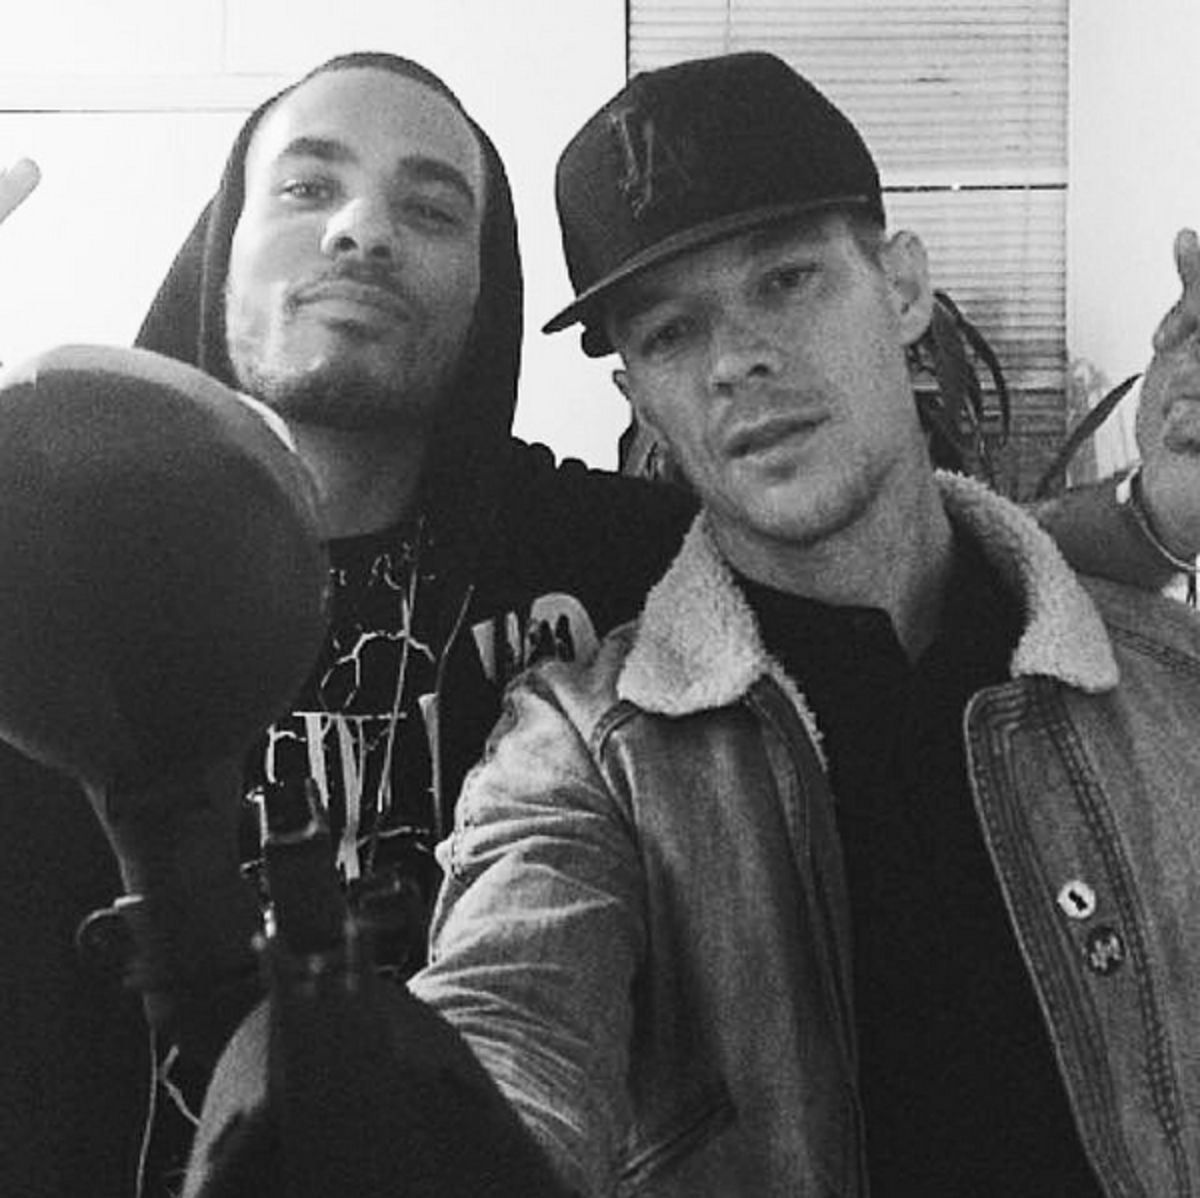 Diplo and Troyboi instagram